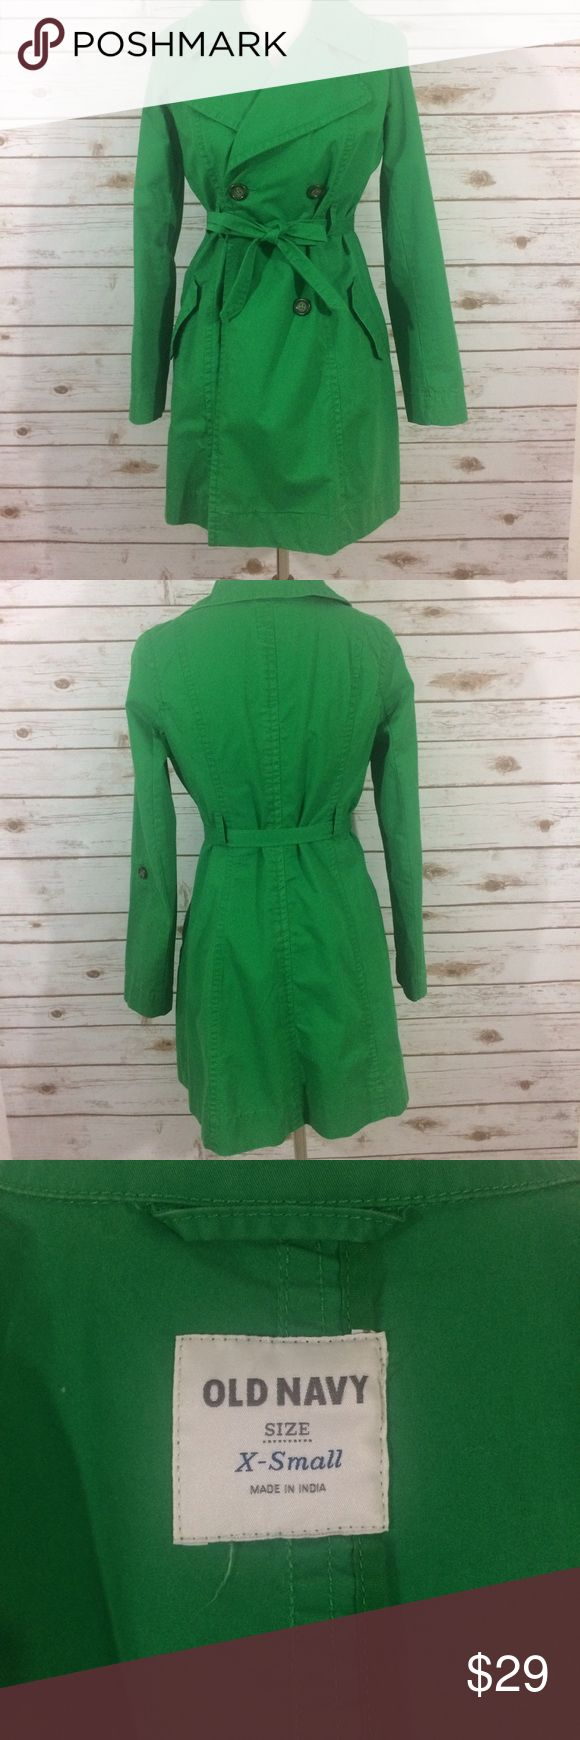 💖OLD NAVY💖 Green Trench Coat Old Navy green trench coat in a size XS but can fit a small. Never worn without tags. Includes tie. Old Navy Jackets & Coats Trench Coats